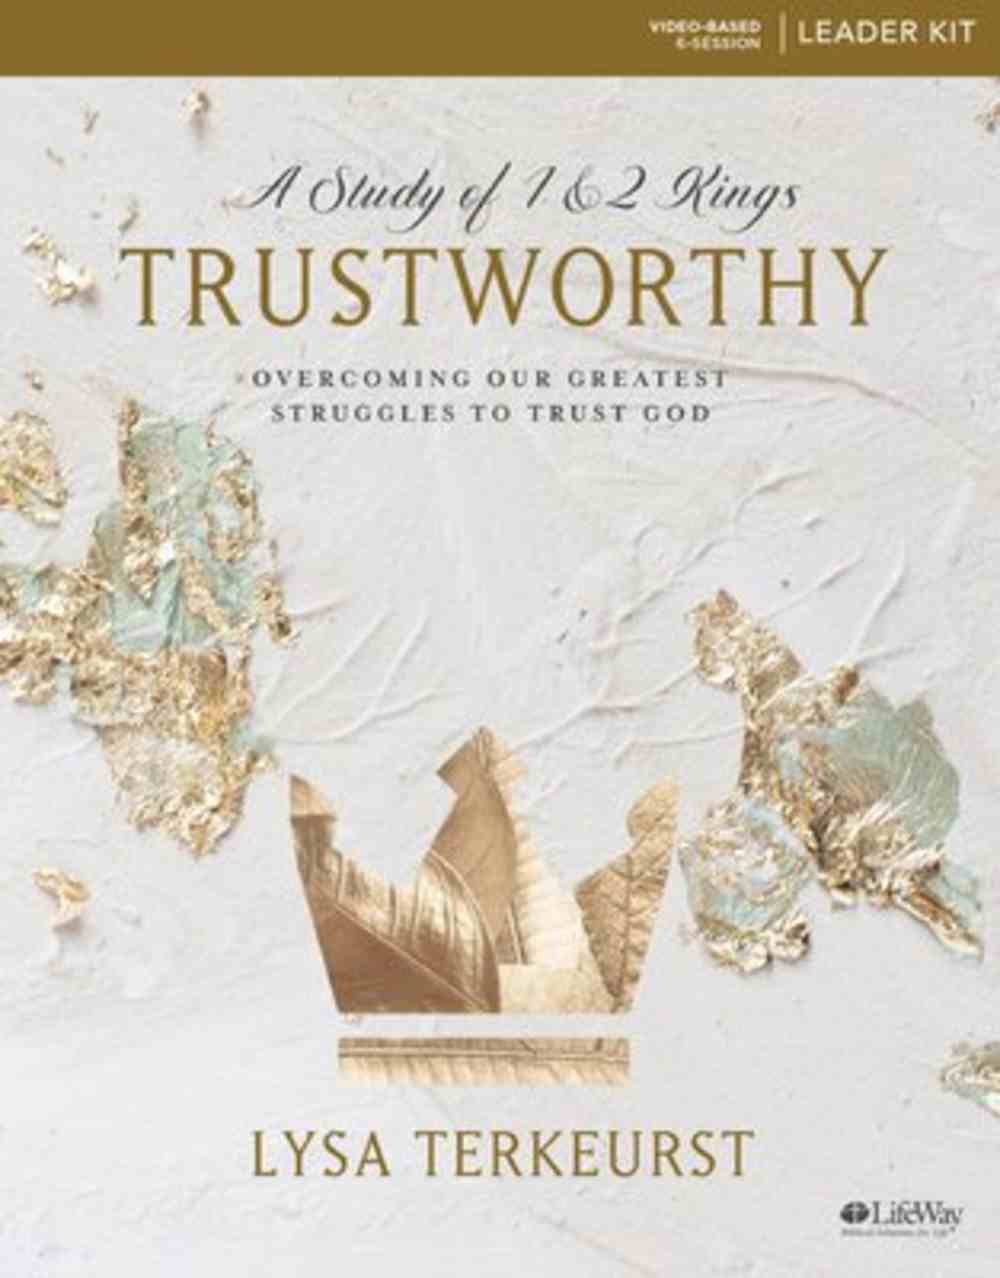 Trustworthy: Oversoming Our Greatest Struggles to Trust God (6 Sessions) (Leader Kit) Pack